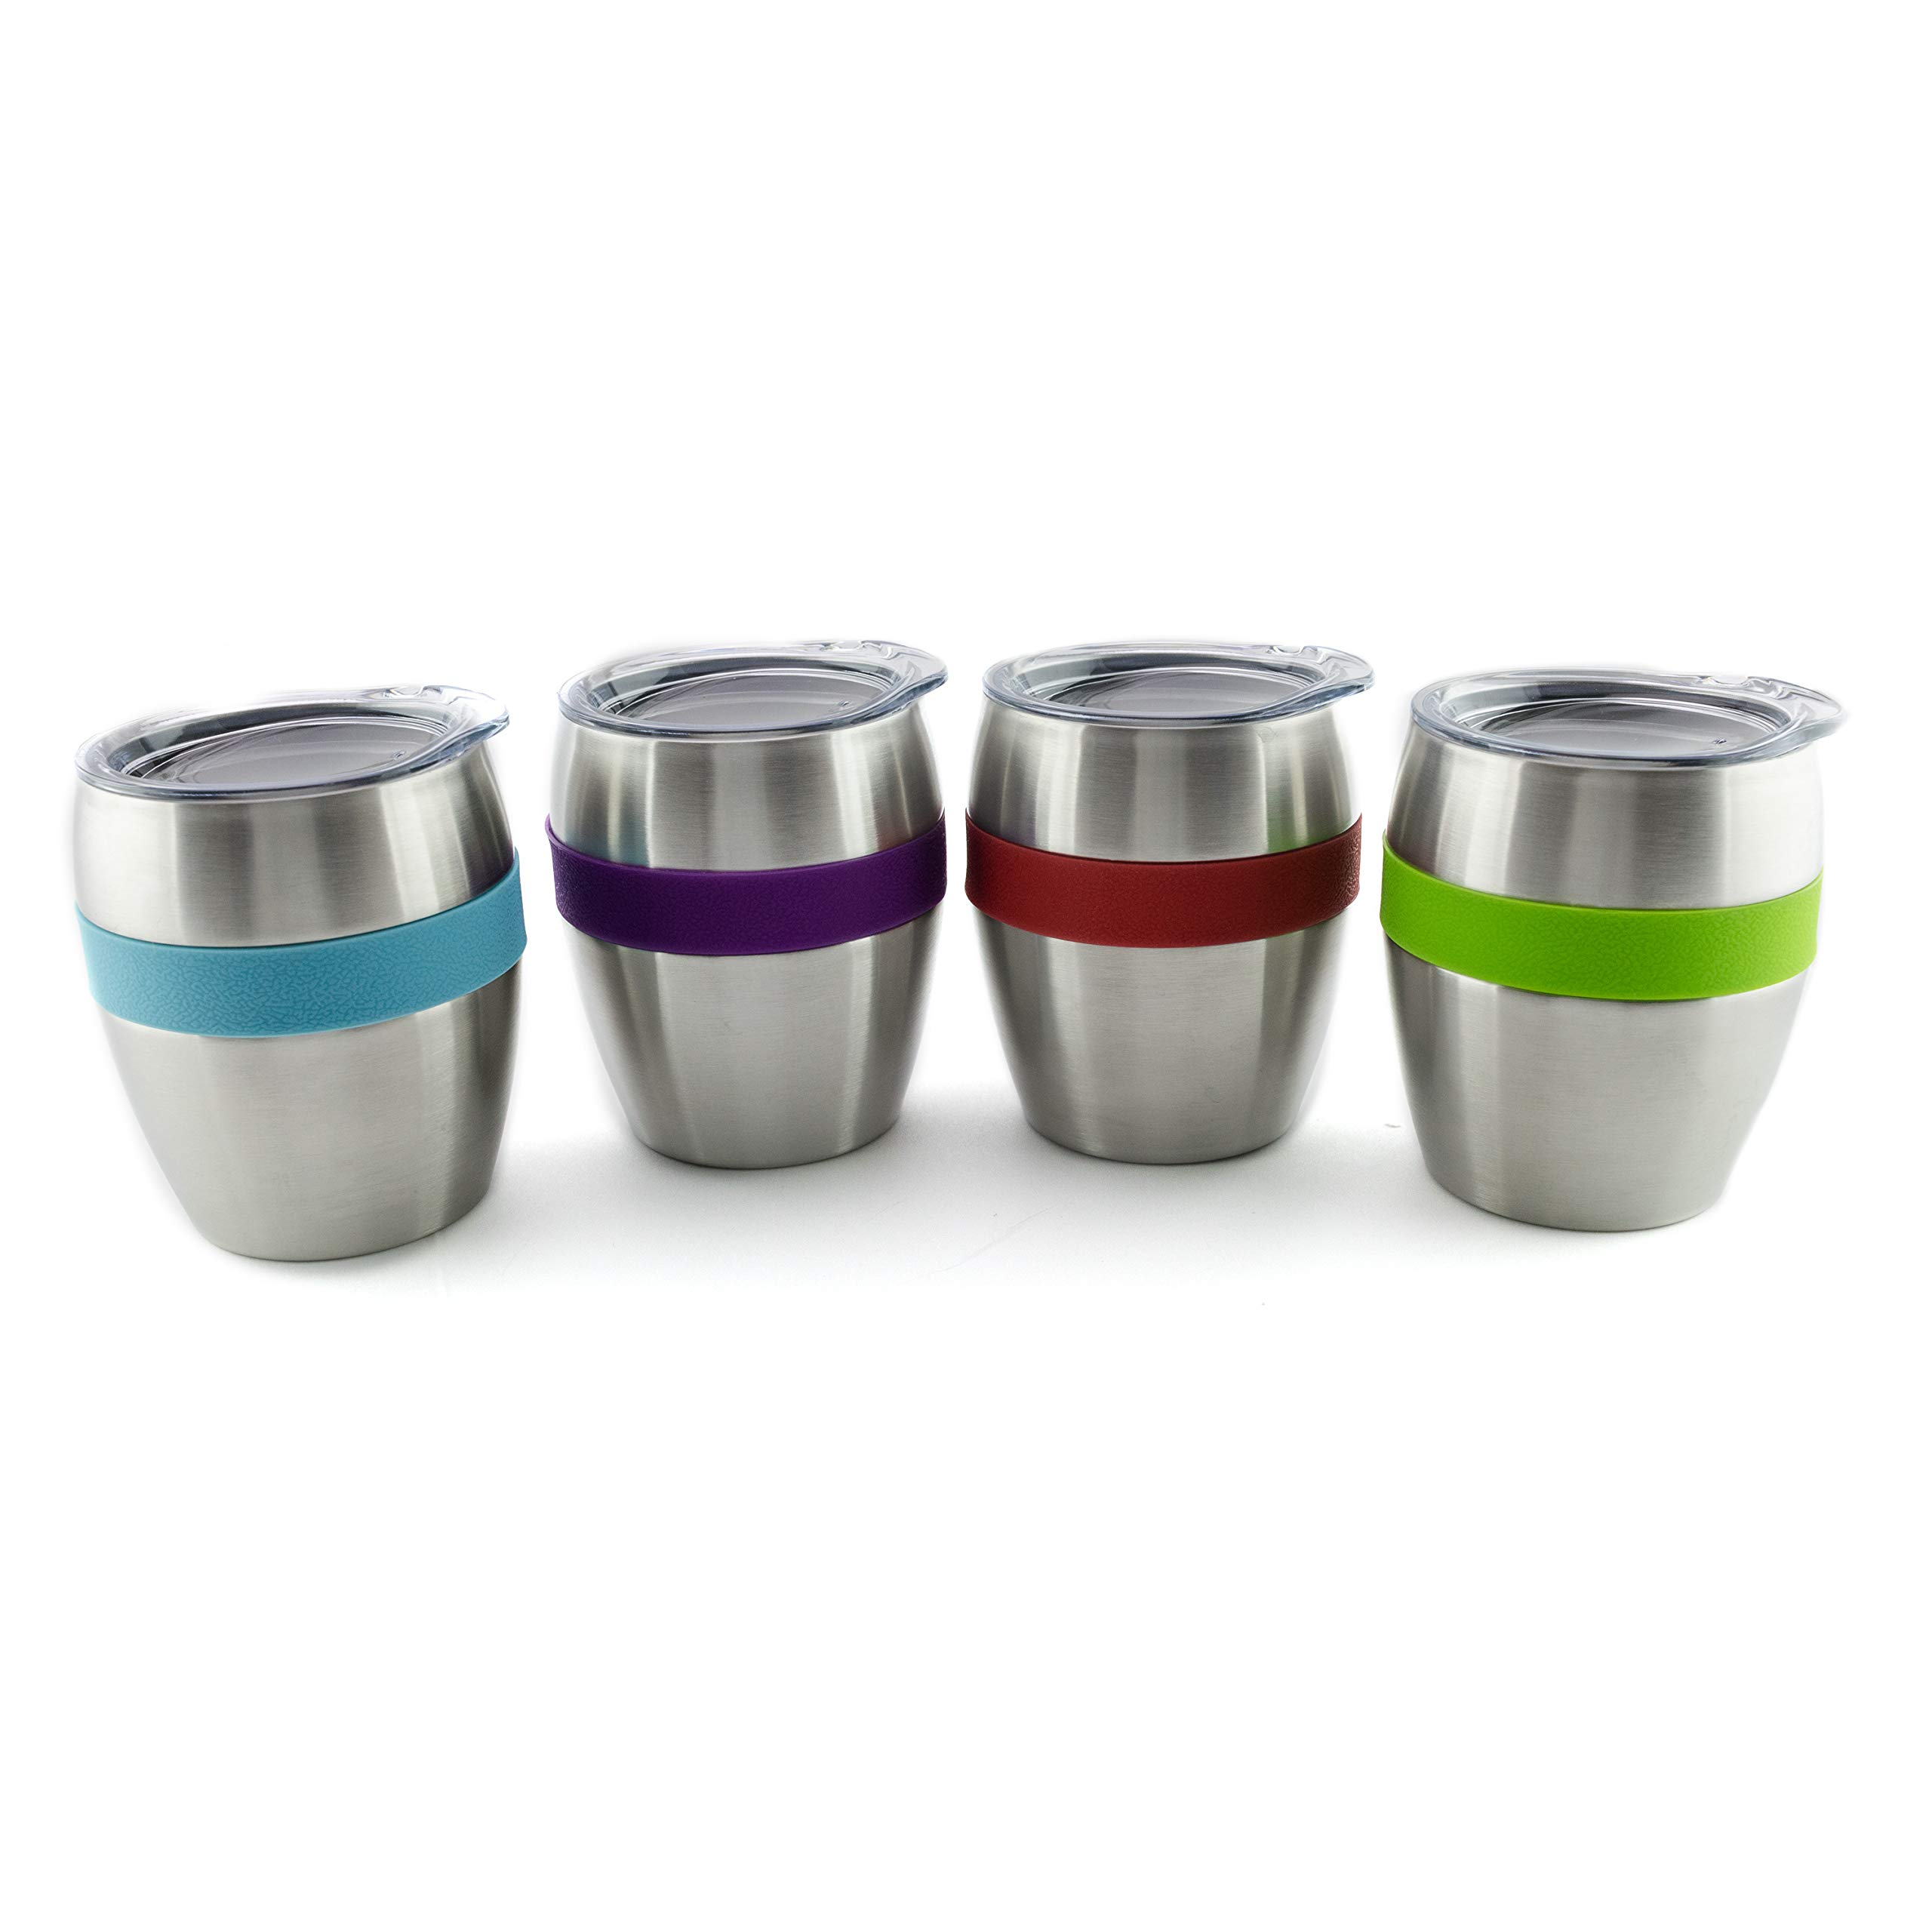 Stainless Steel Wine Glasses with Lids, Set of 4, Double Wall Insulated Stemless Wine and Drink Tumblers with Spill-Resistant Lids with Built -in 4 Color Comfort Grips by Chozin Steelware (Image #3)